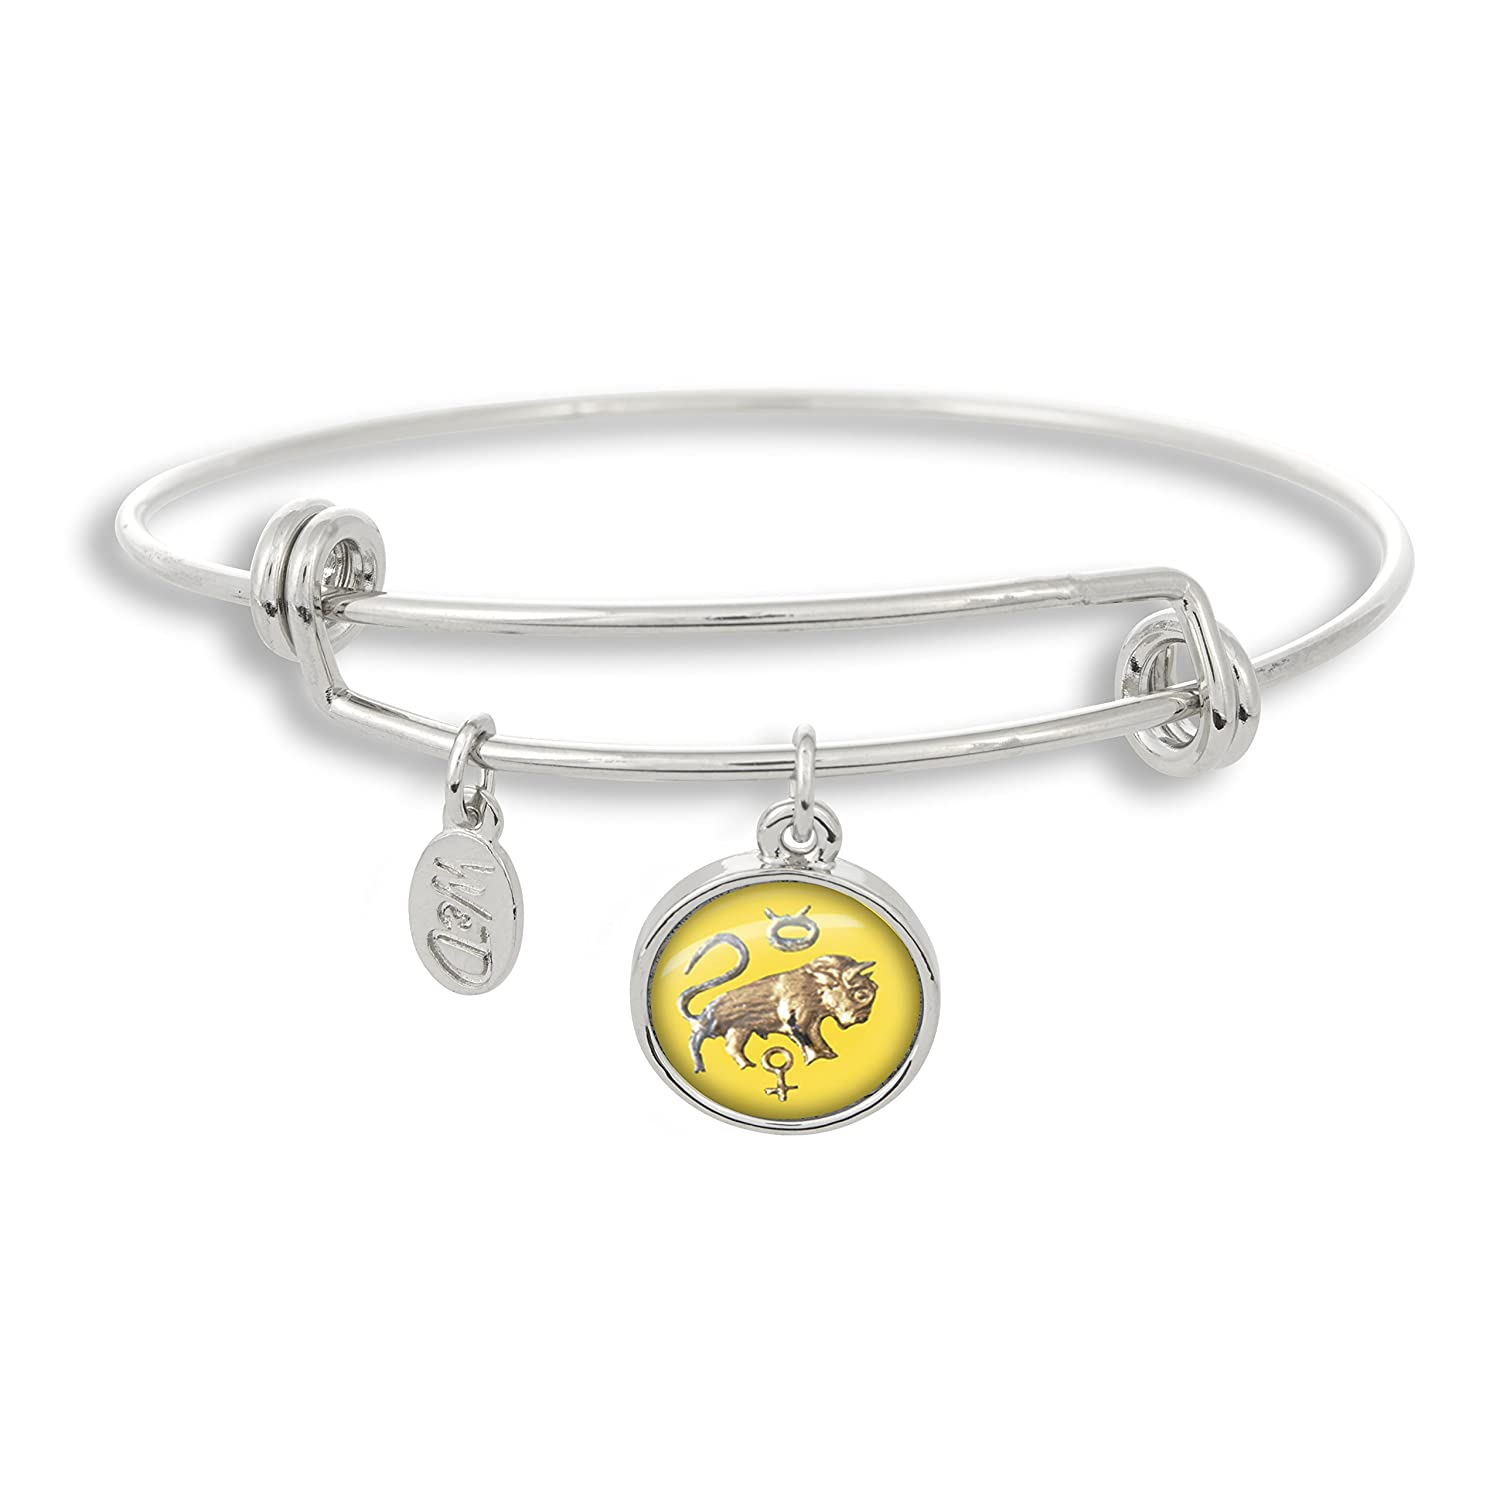 The Adjustable Band Bangle Bracelet featuring the ancient Taurus astrology sign